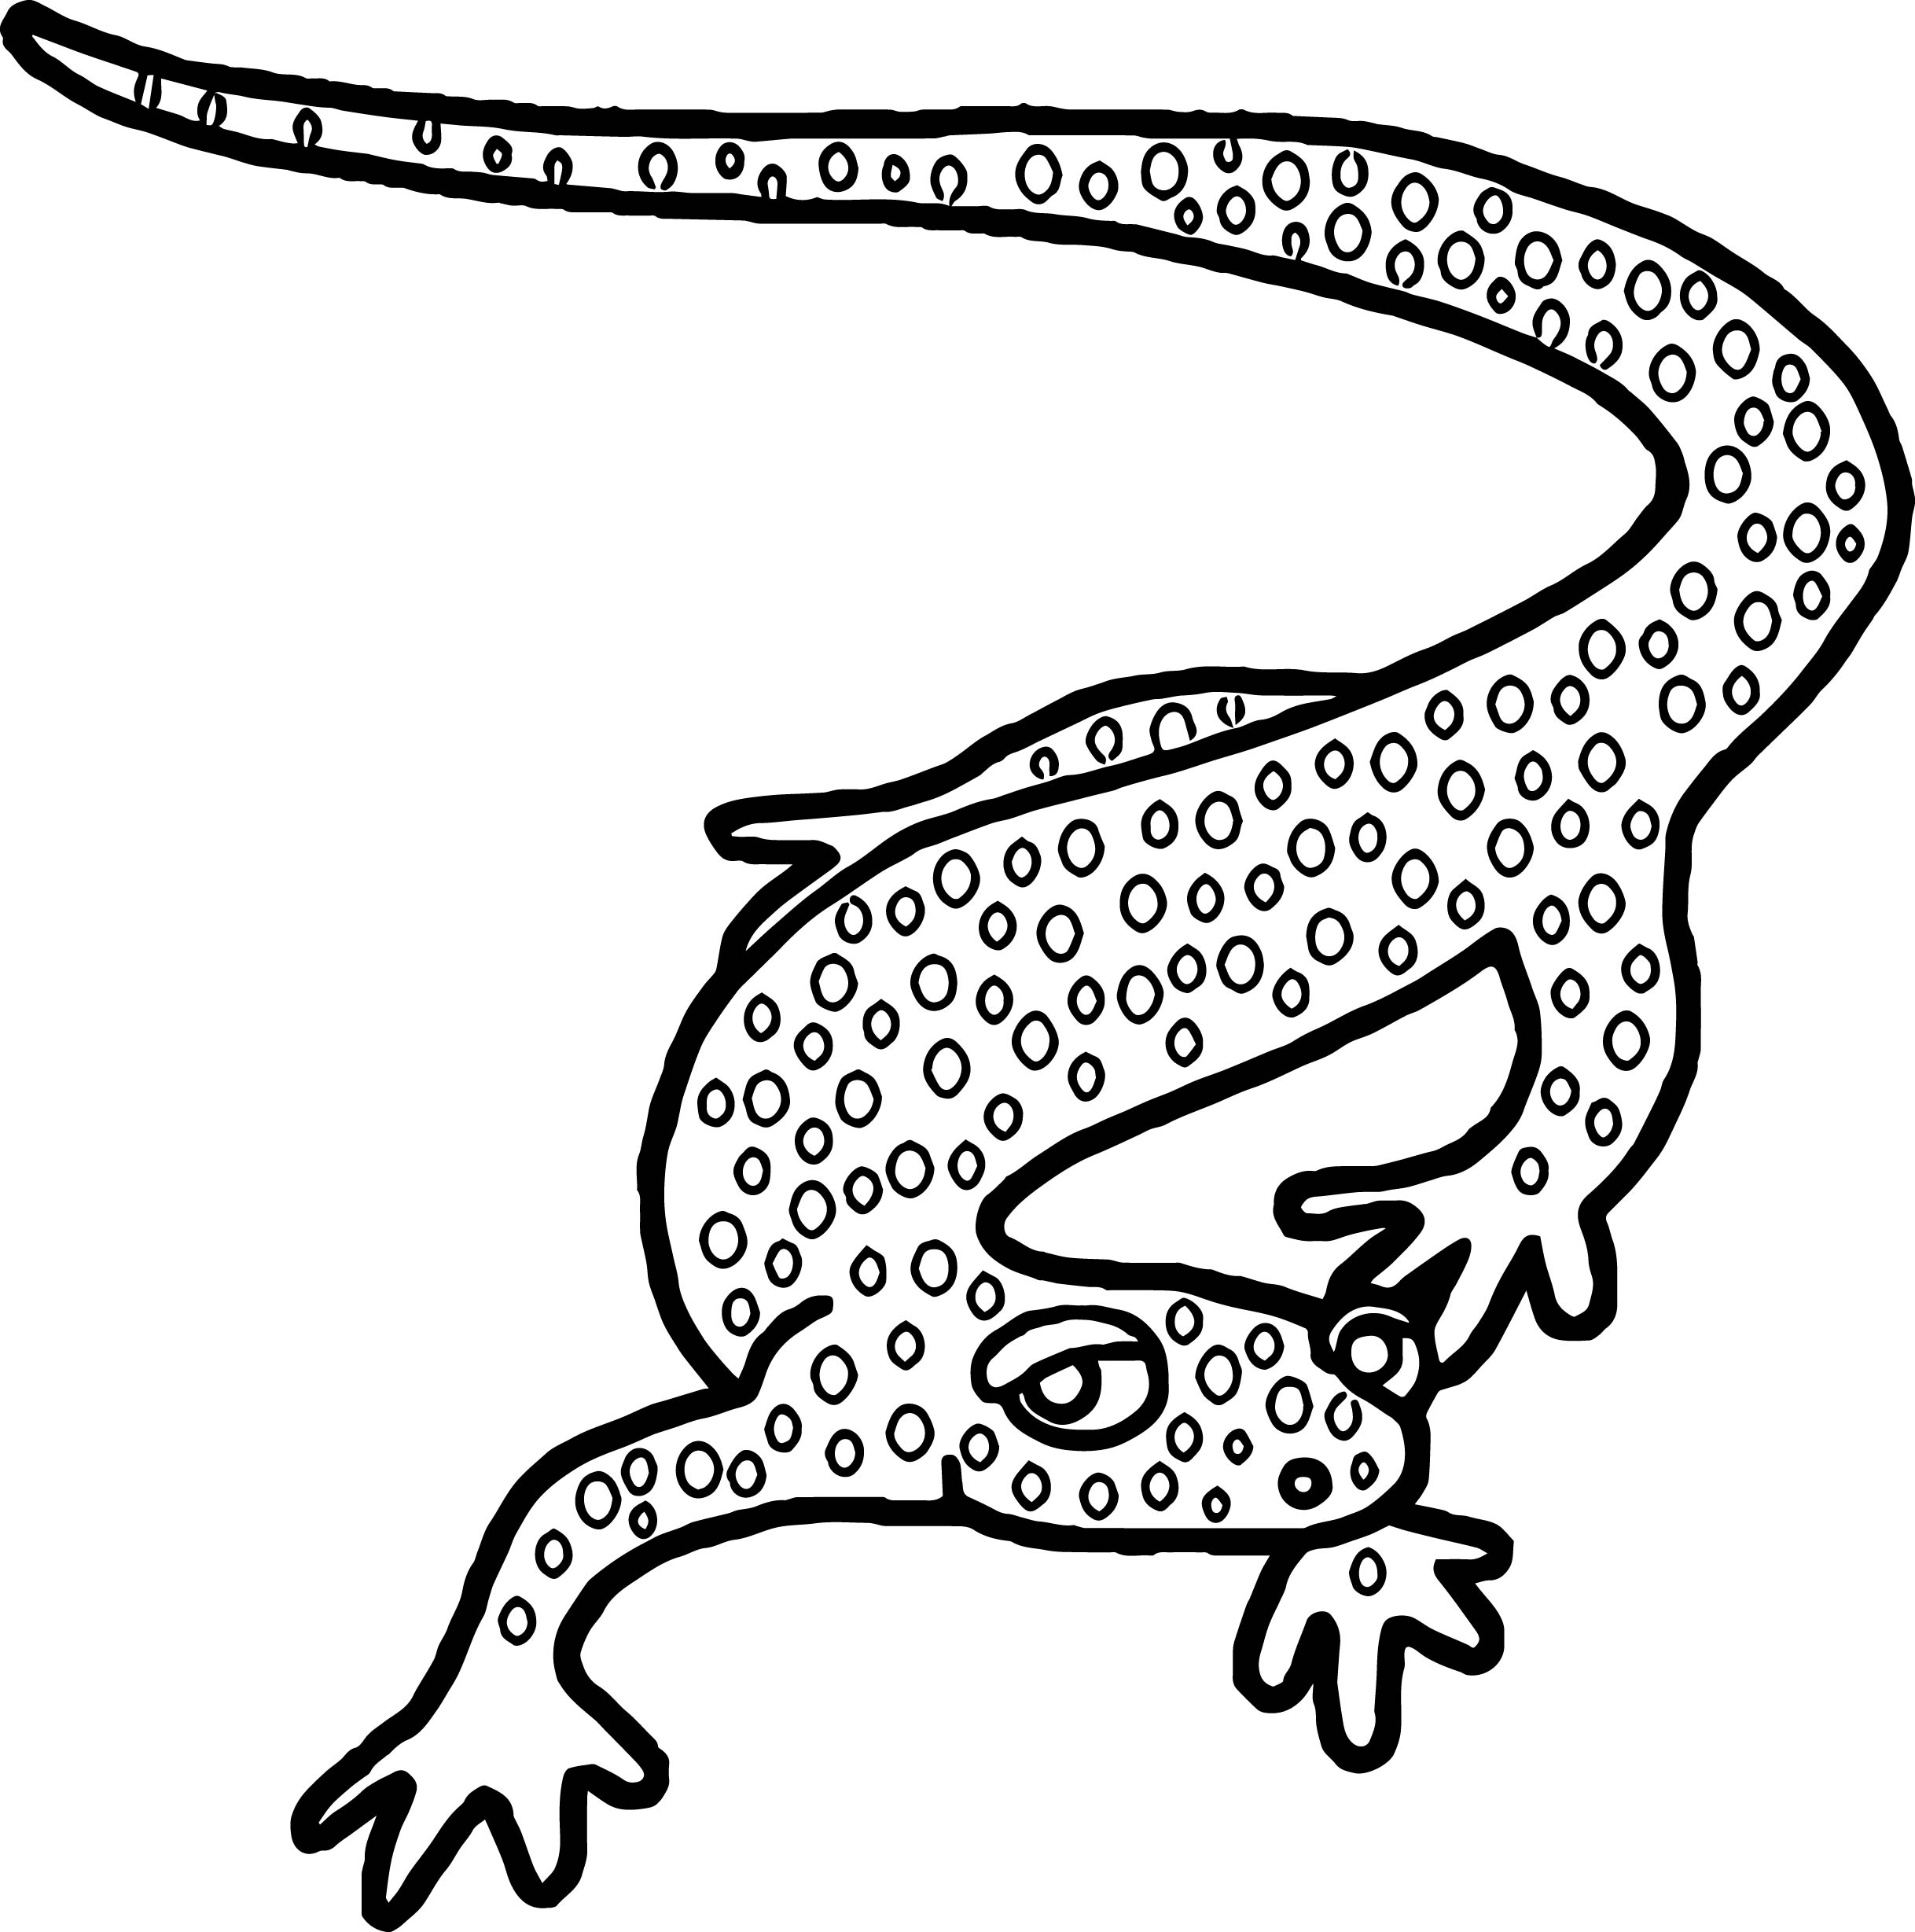 Amphibian Reptile Coloring Page